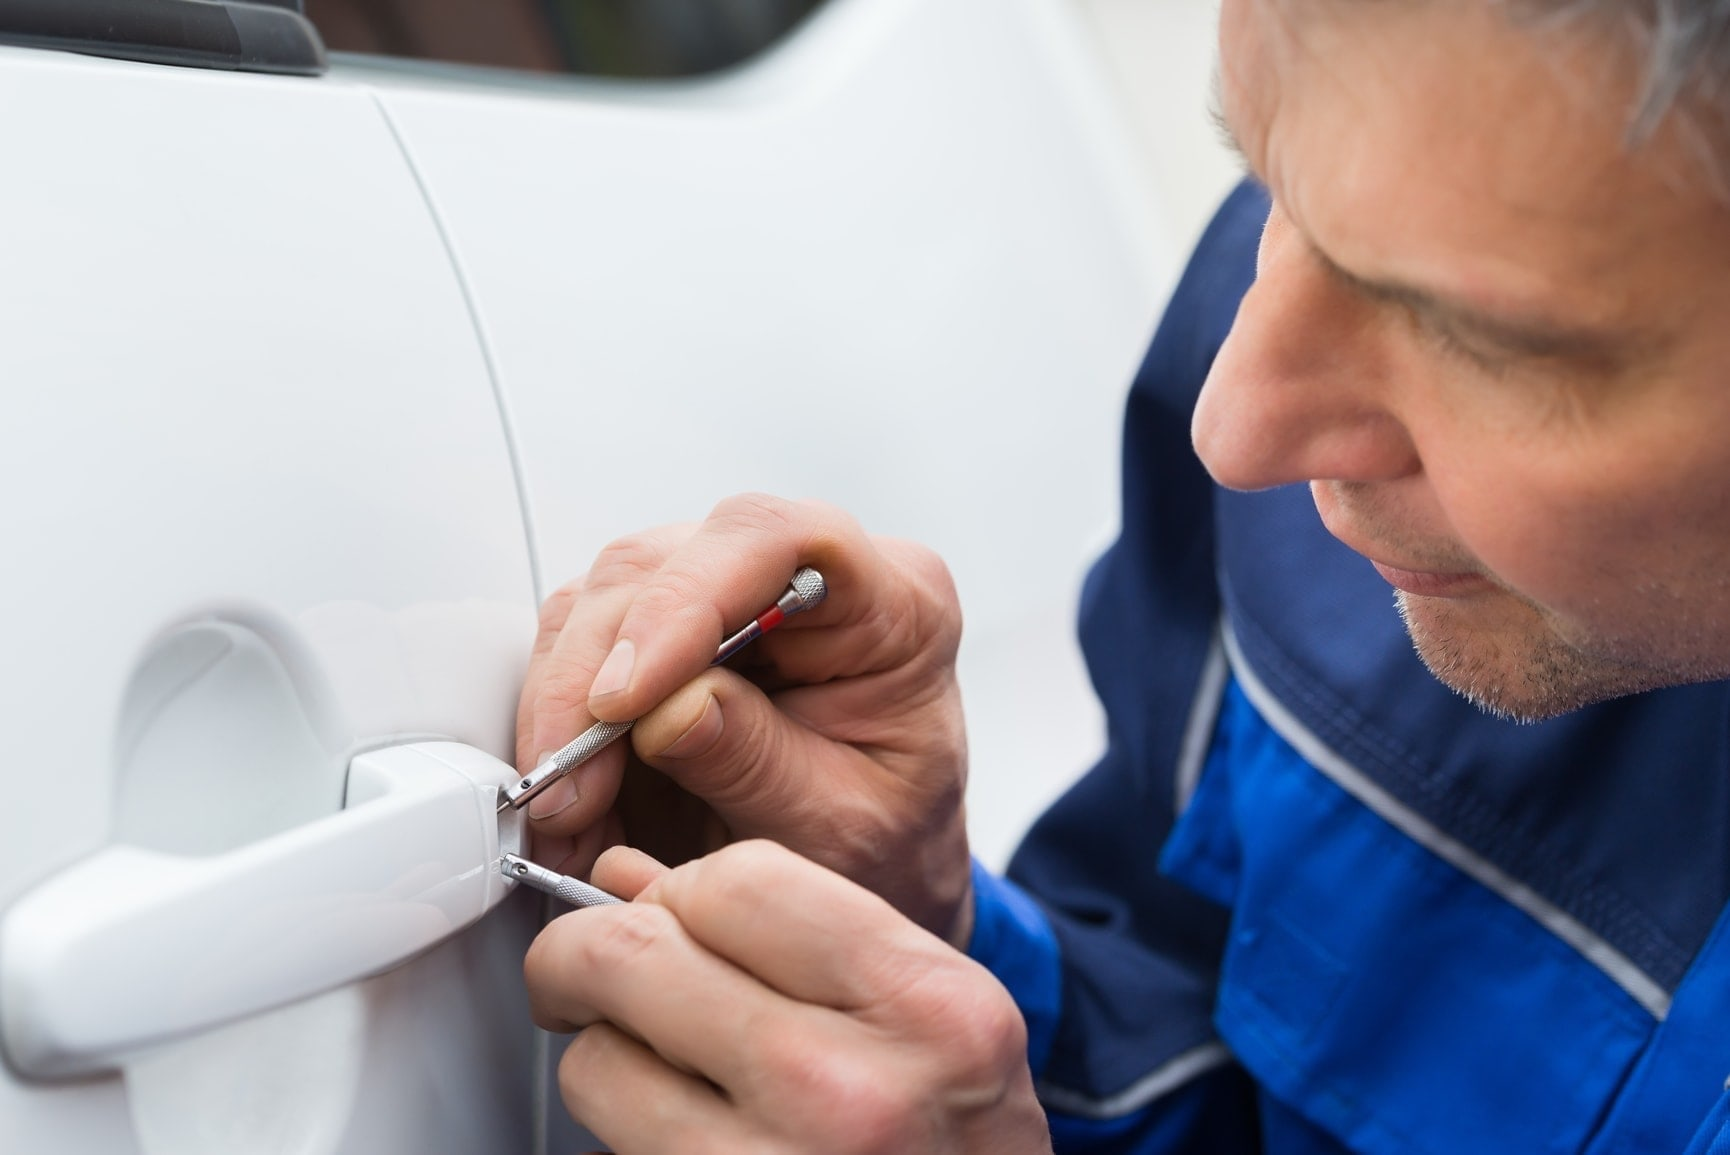 Things to Consider When Choosing an Emergency Locksmith